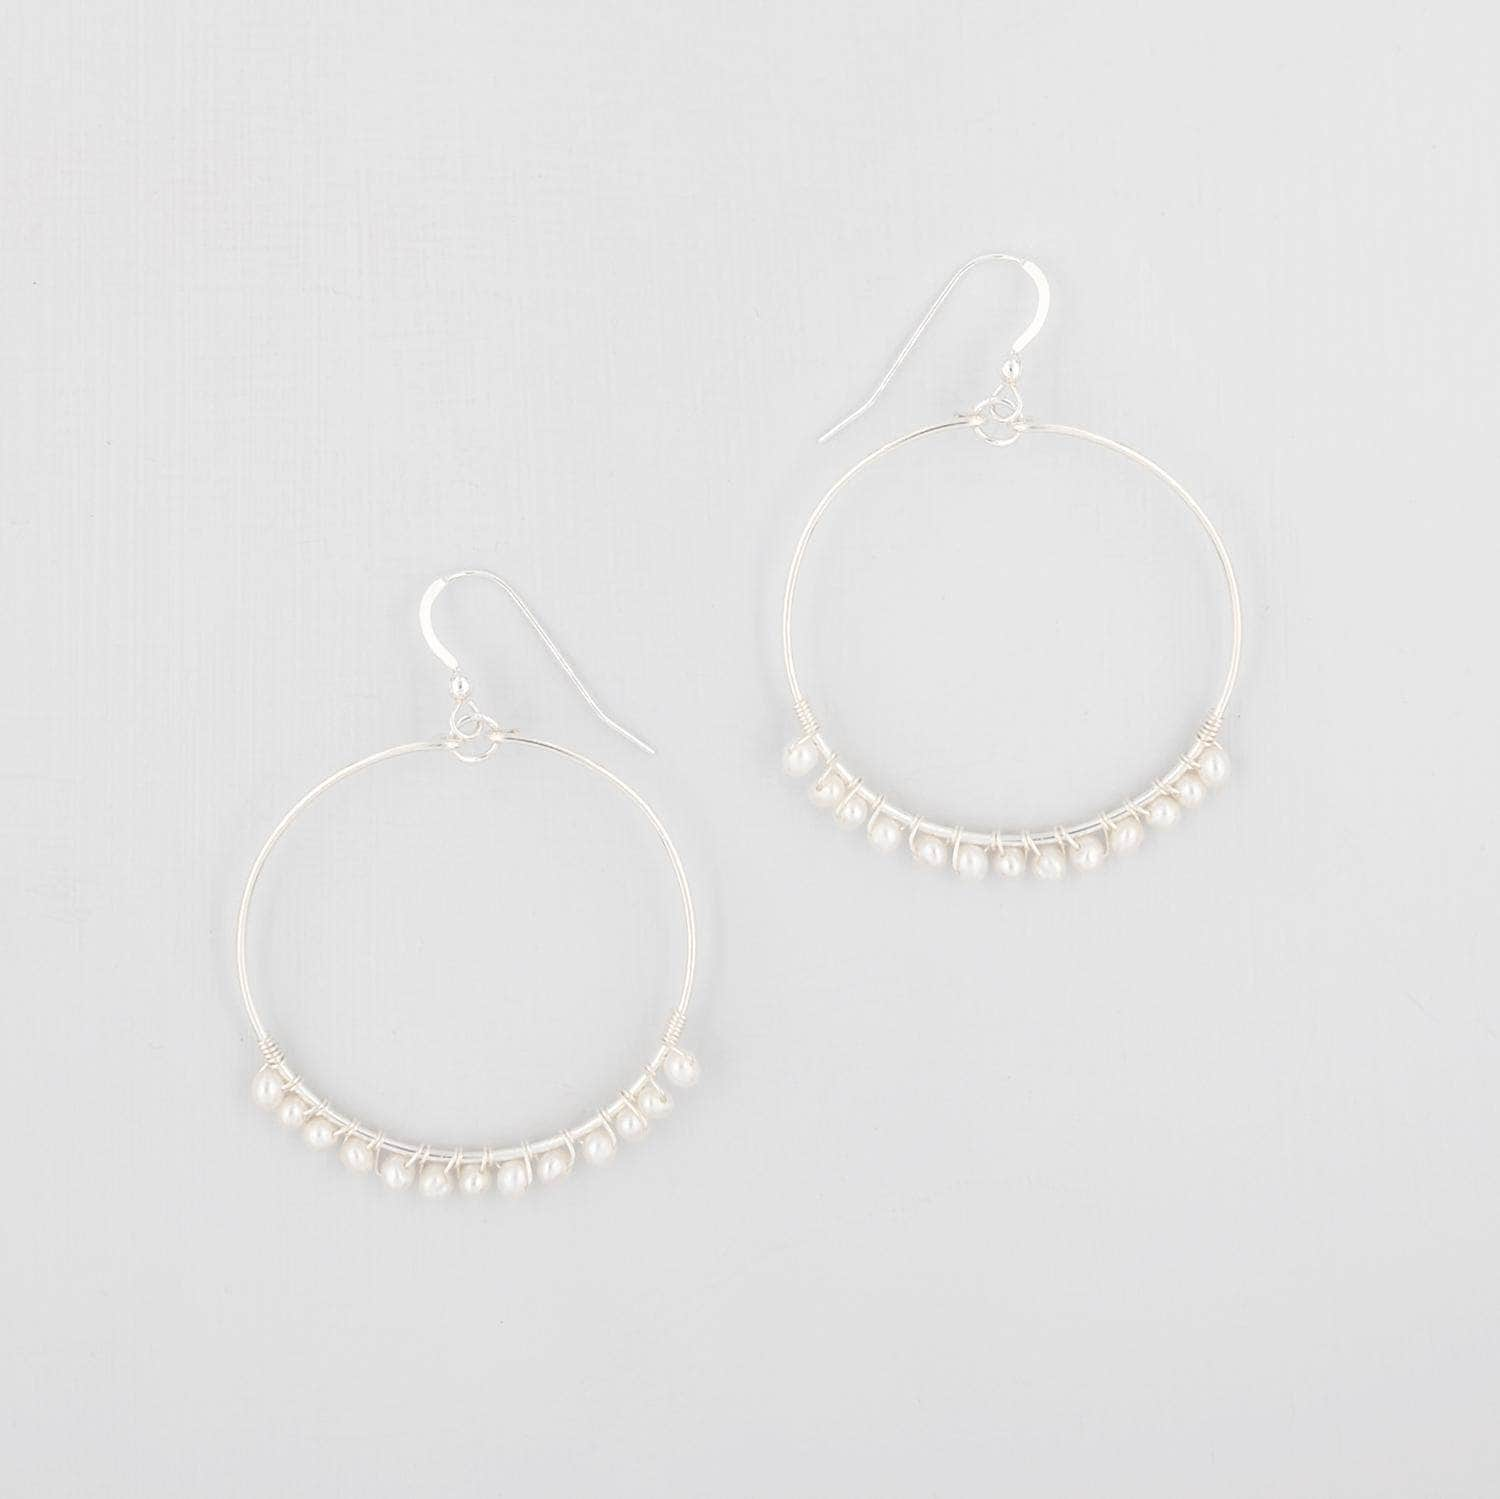 Wedding Earring 14k Gold Filled Freshwater Pearl Hoop Earrings - 'Lyla'